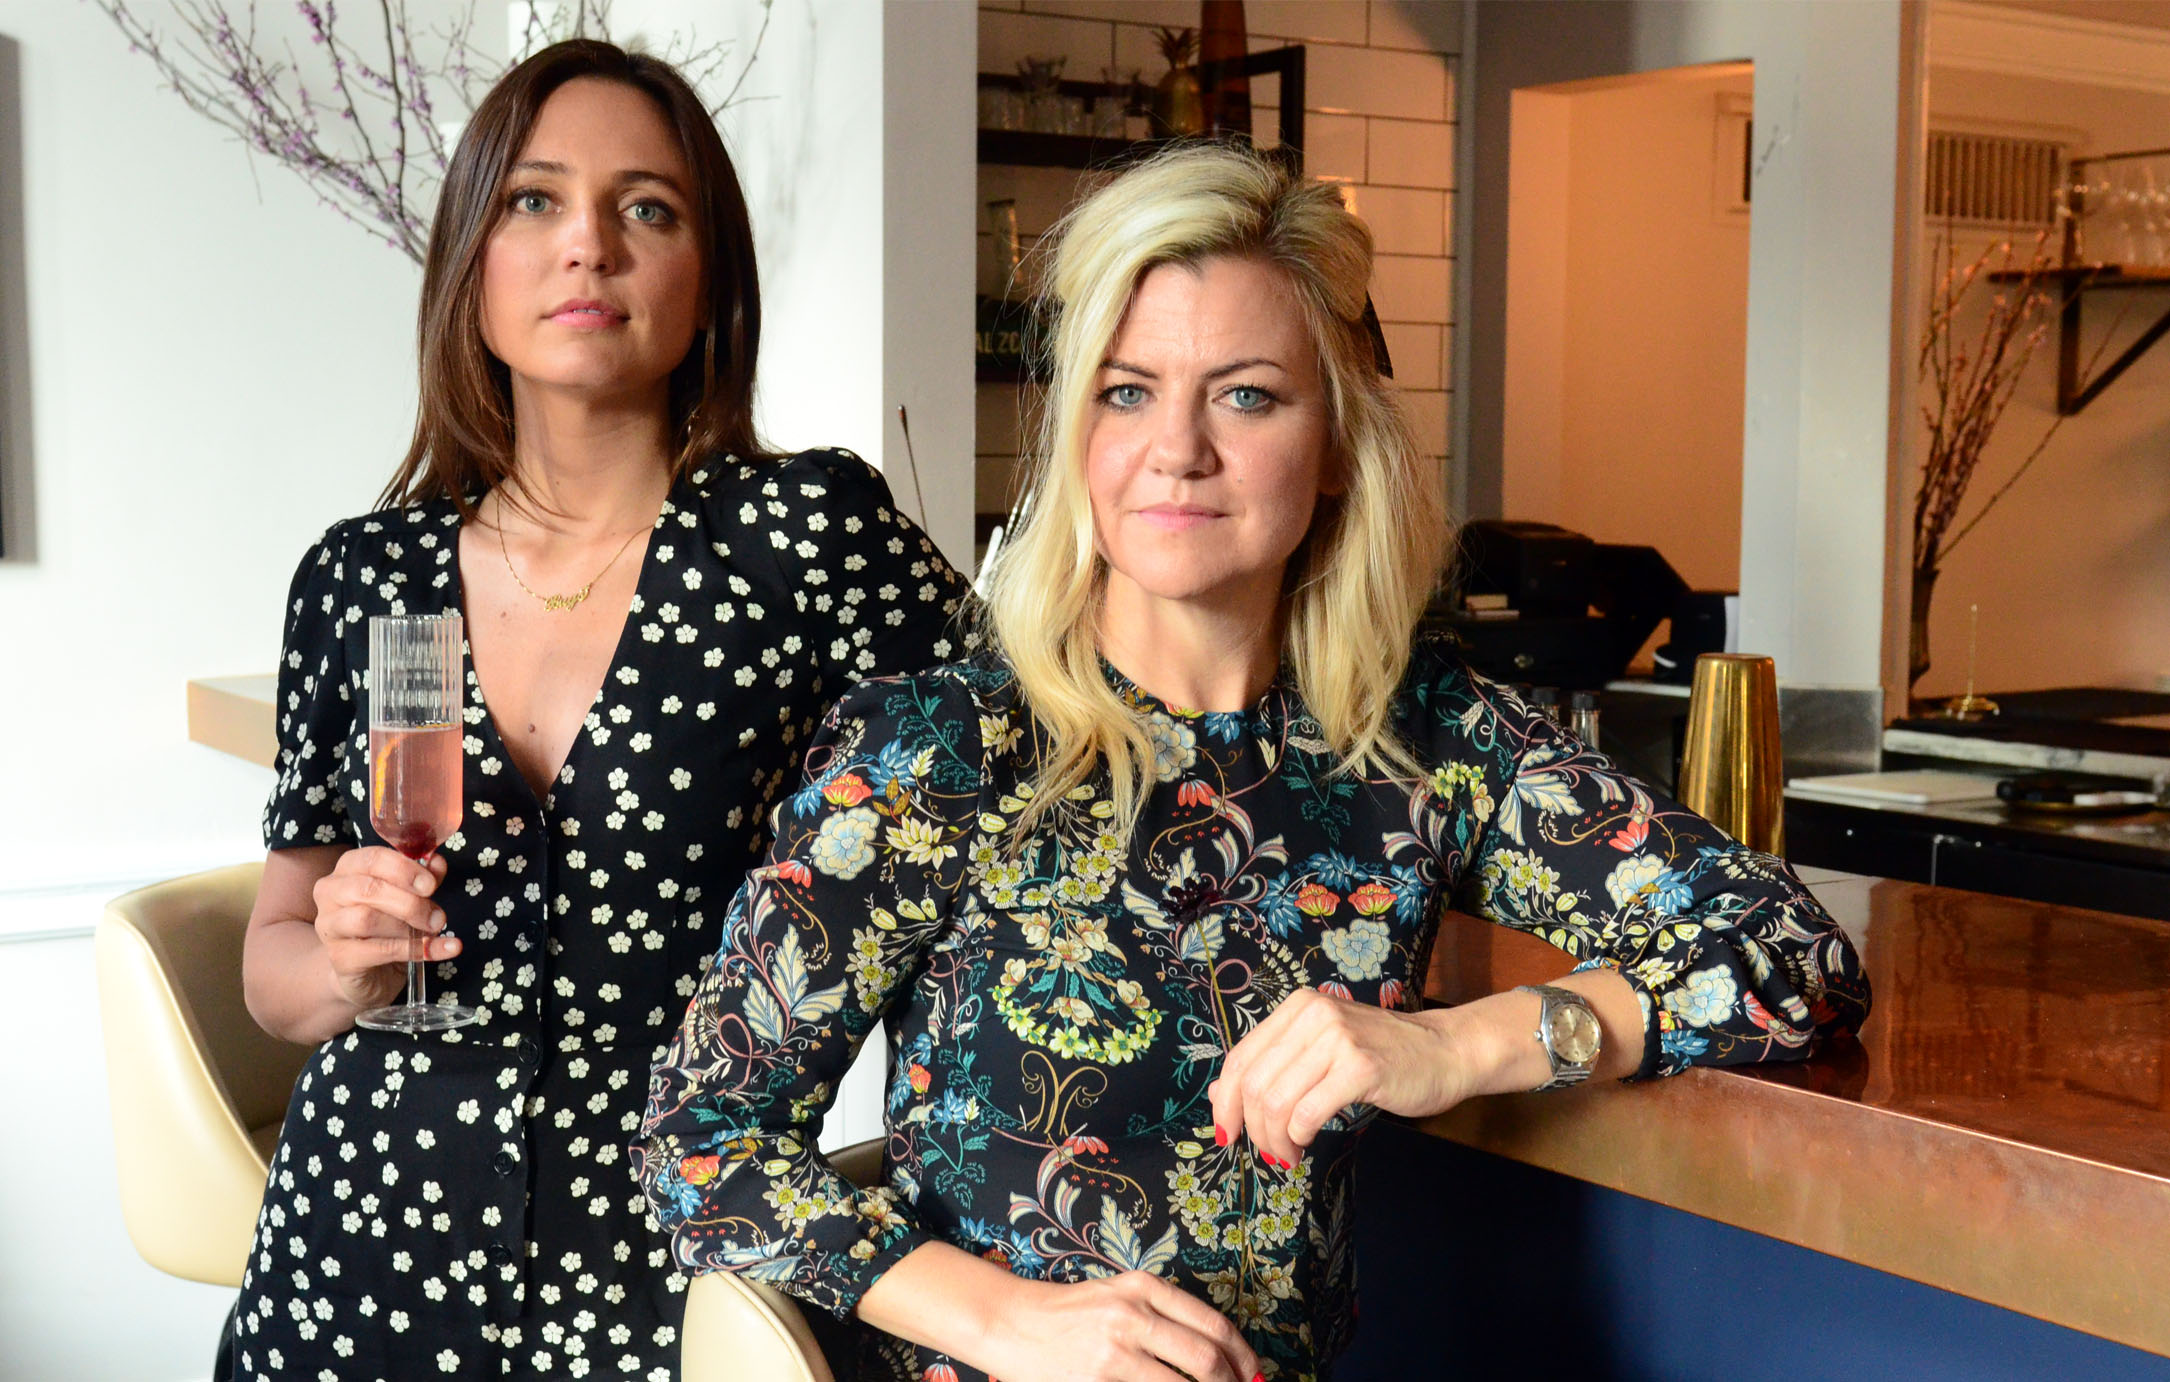 women-i-work-with-going-out-in-style-erin-furey-cassidy-iverson-floral-dresses